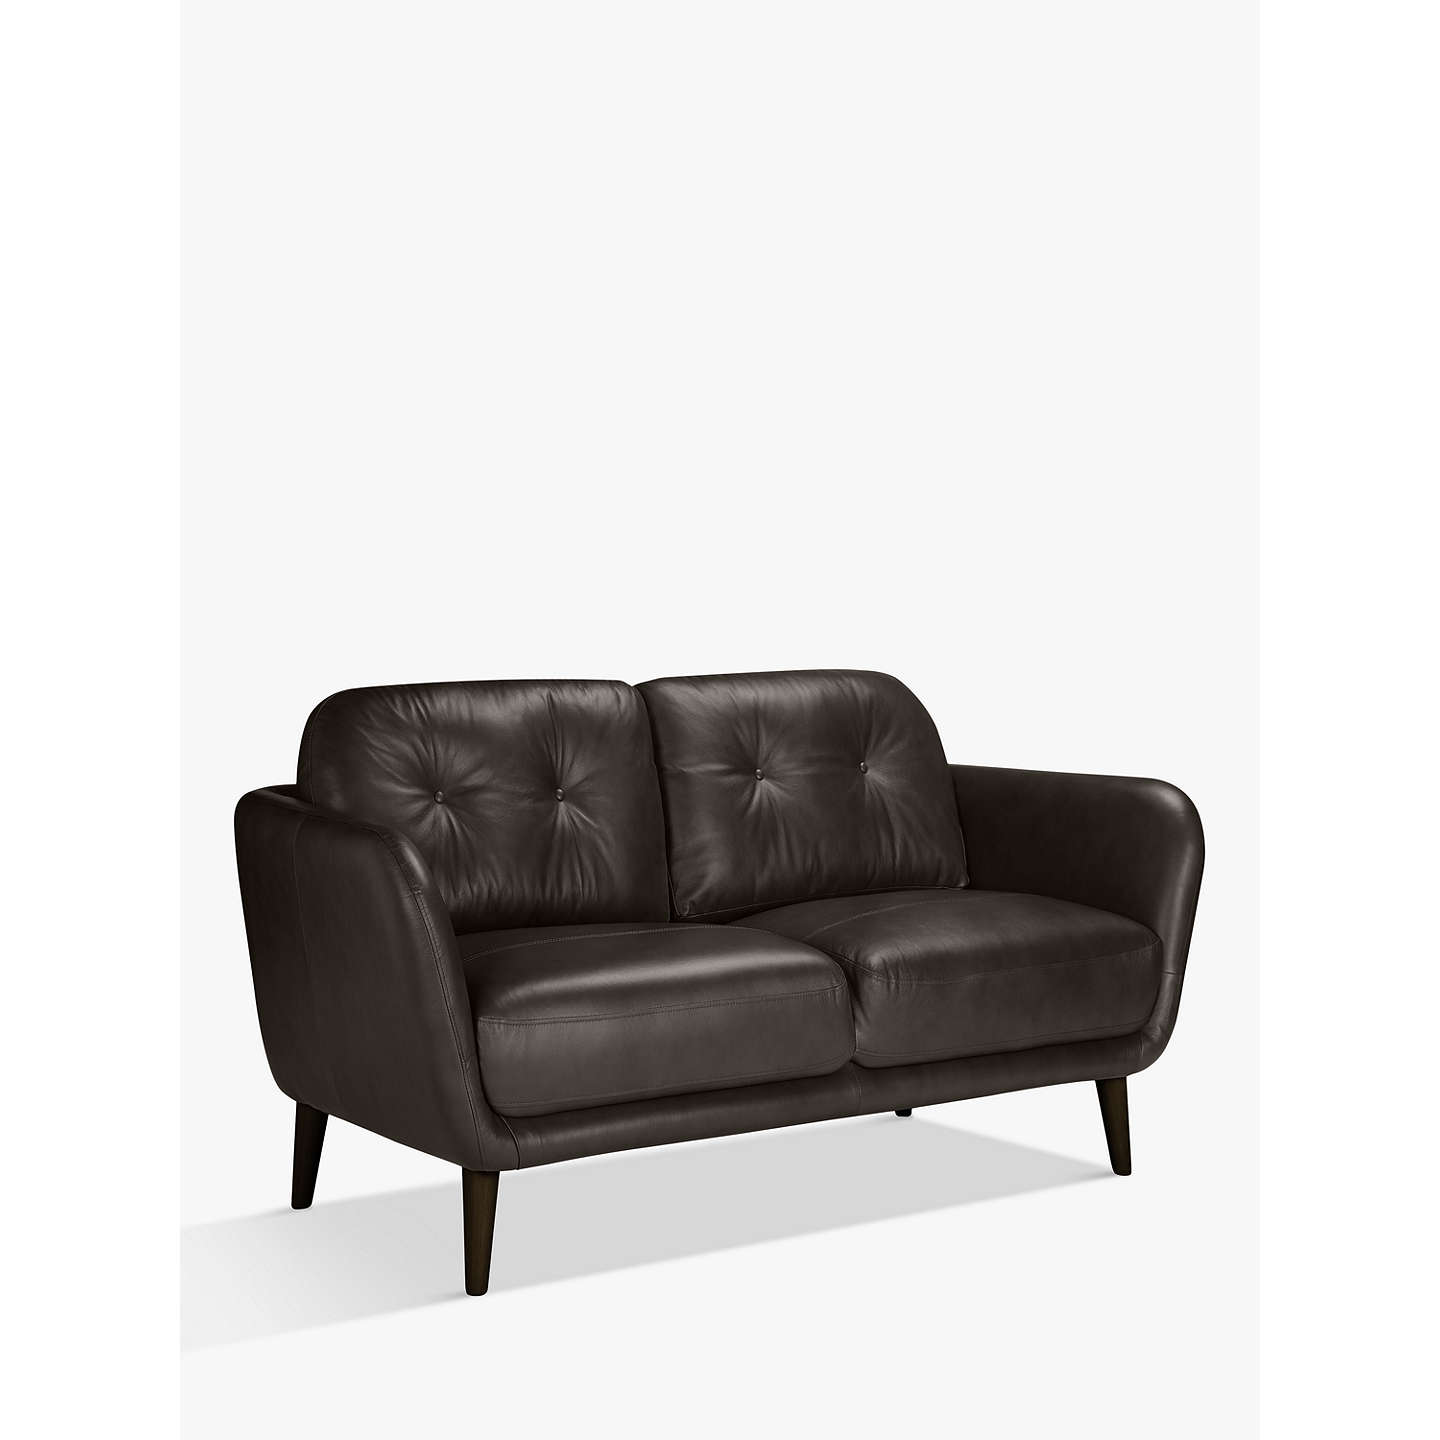 Buyhouse By John Lewis Arlo Small 2 Seater Leather Sofa,